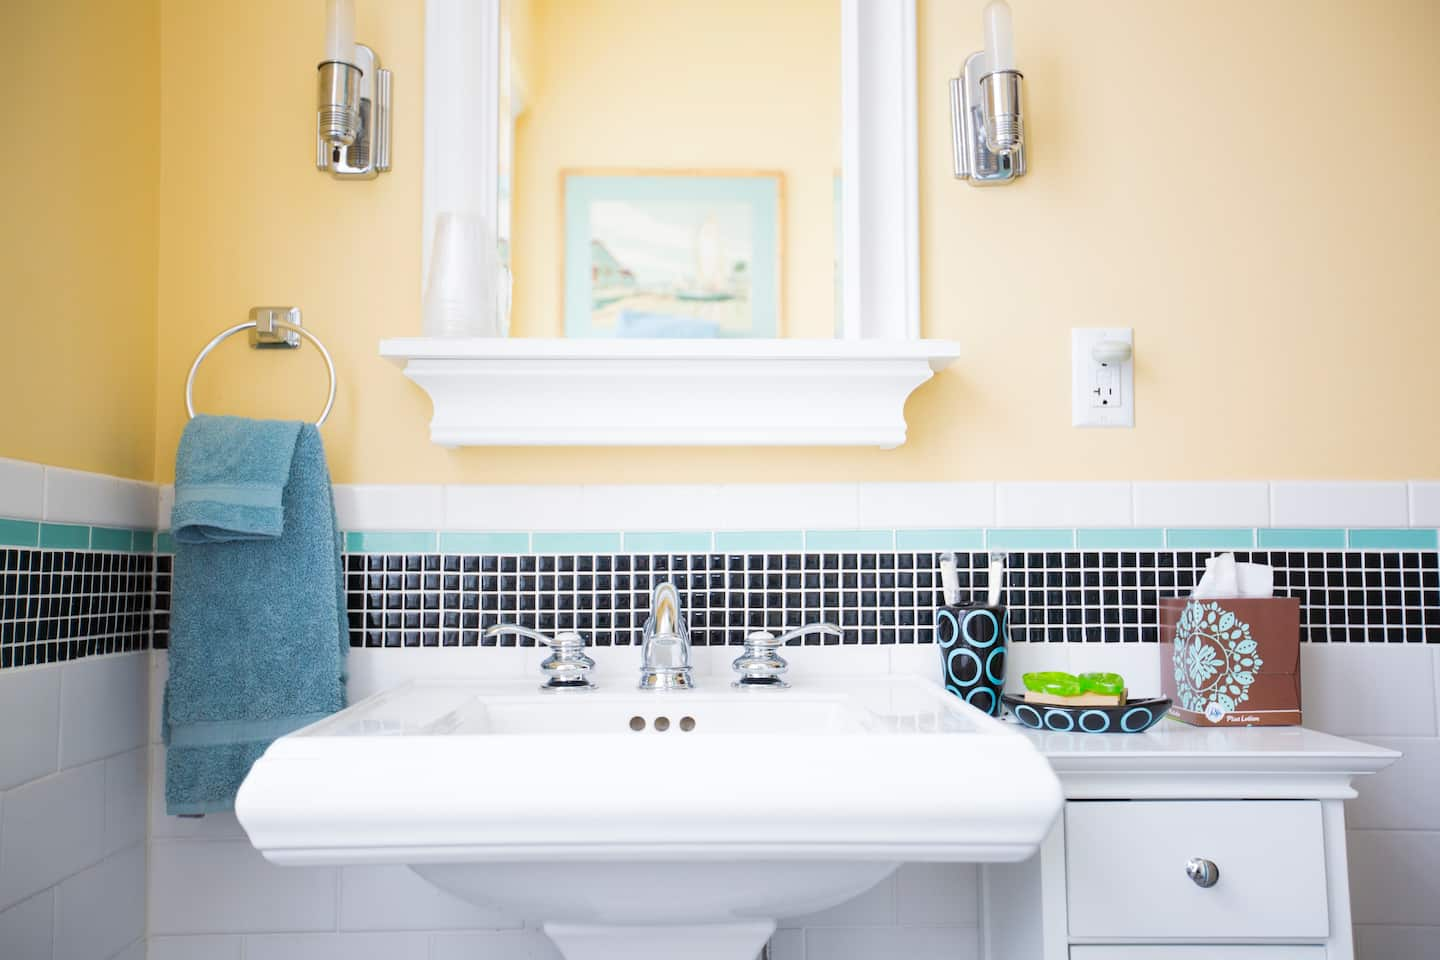 Bathroom Remodeling Tips And Trends Angies List - Updike bathroom remodeling